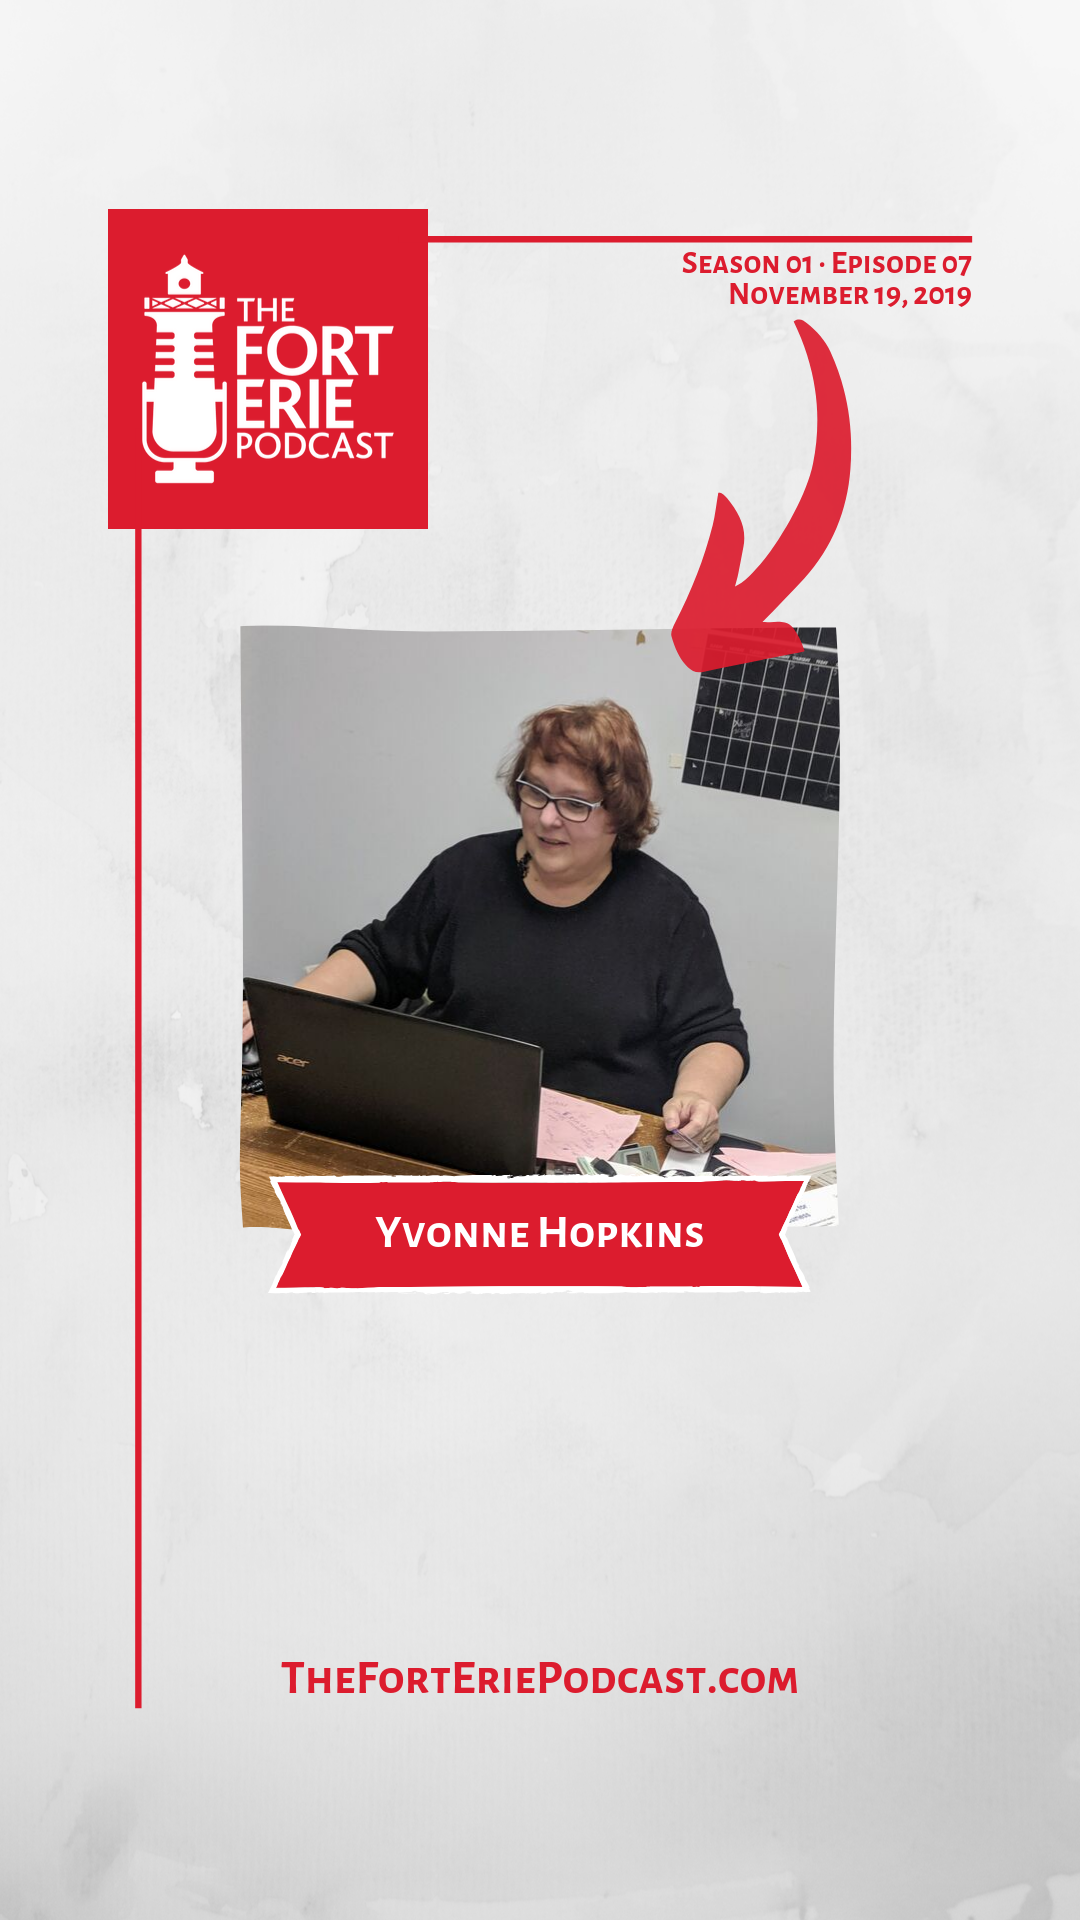 S01E07 – Yvonne Hopkins – Manager, Fort Erie Festivals